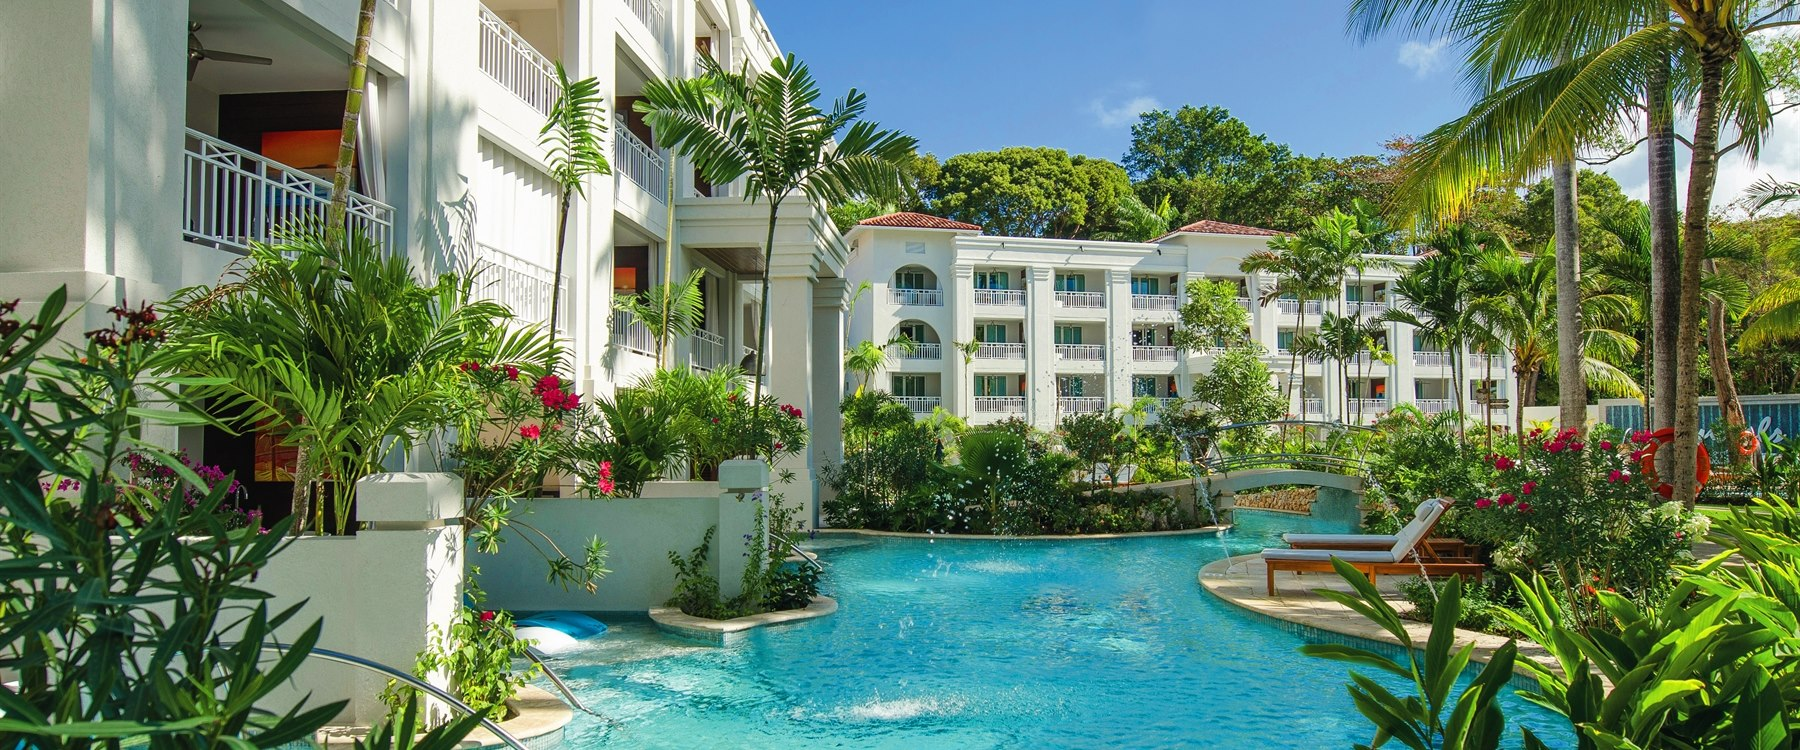 Stunning Exterior of Sandals, Barbados